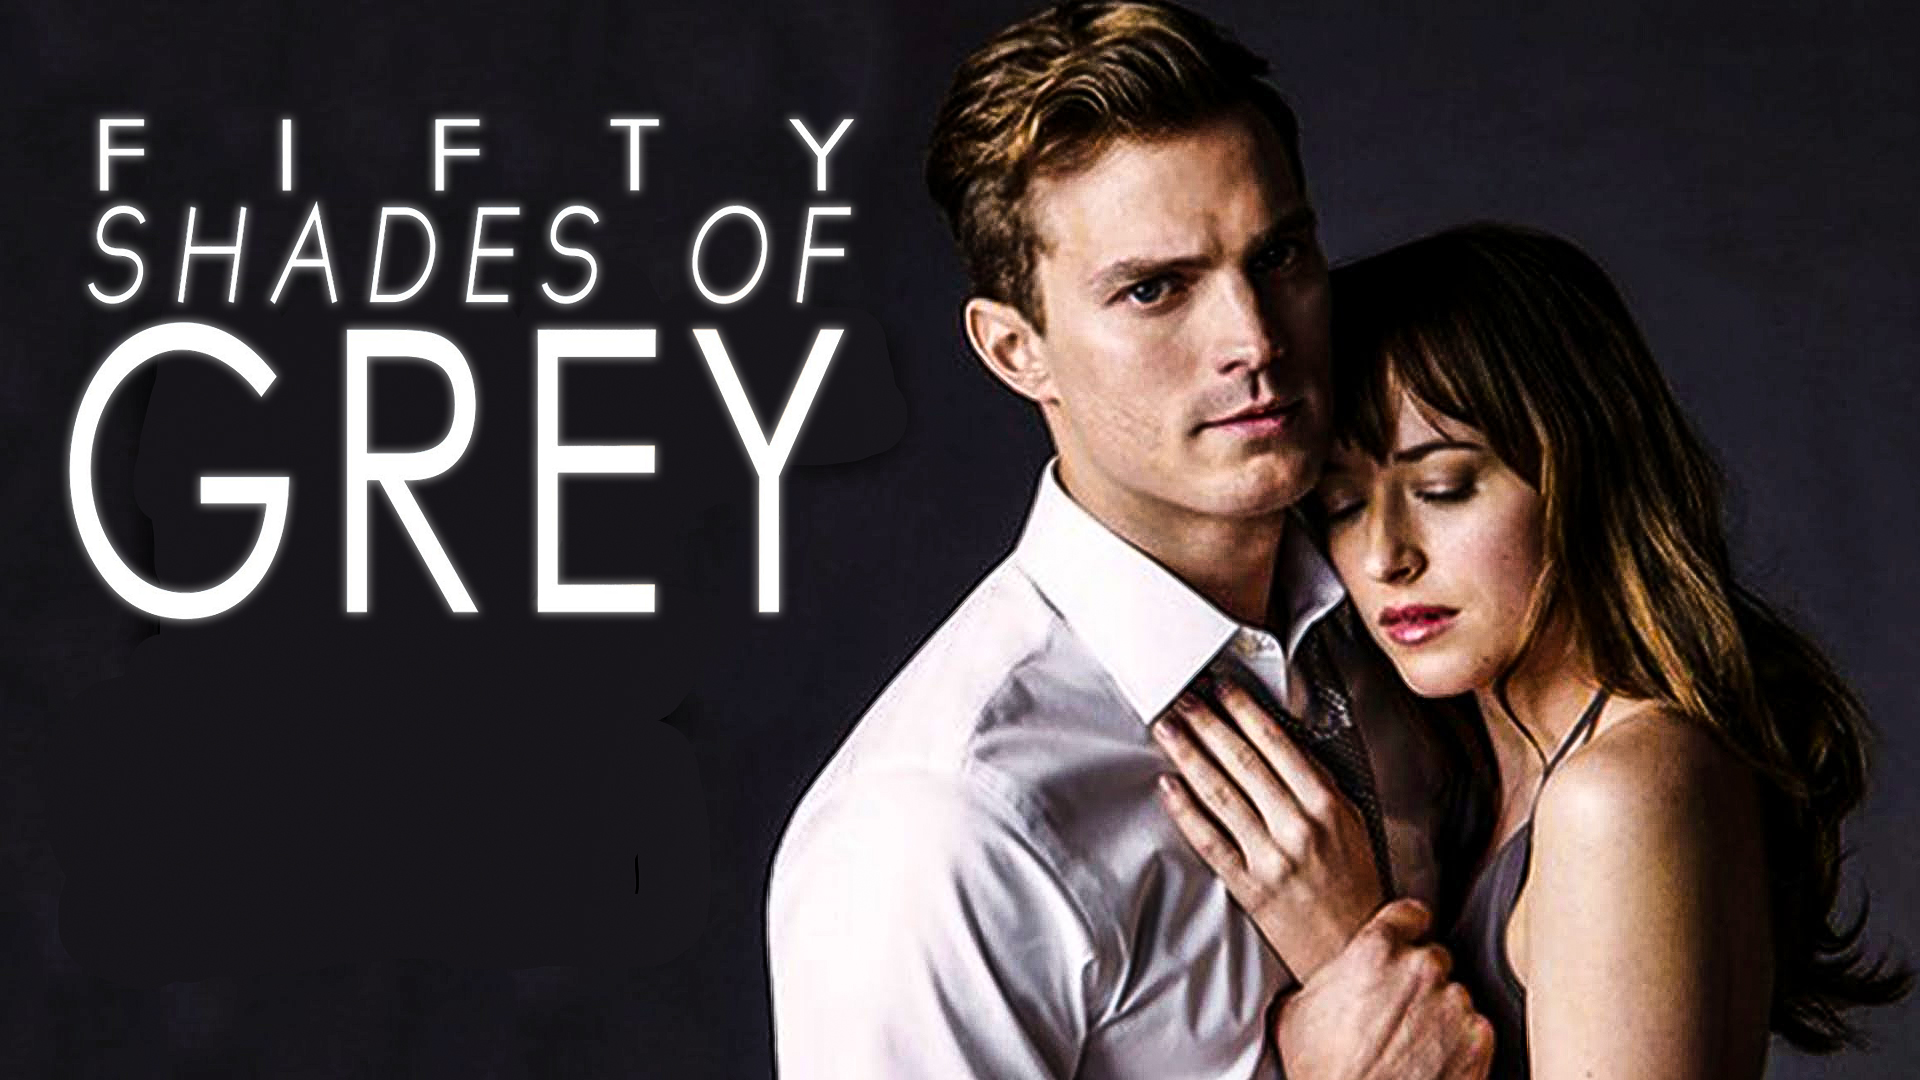 50 shades of grey live chat gets an online twitter